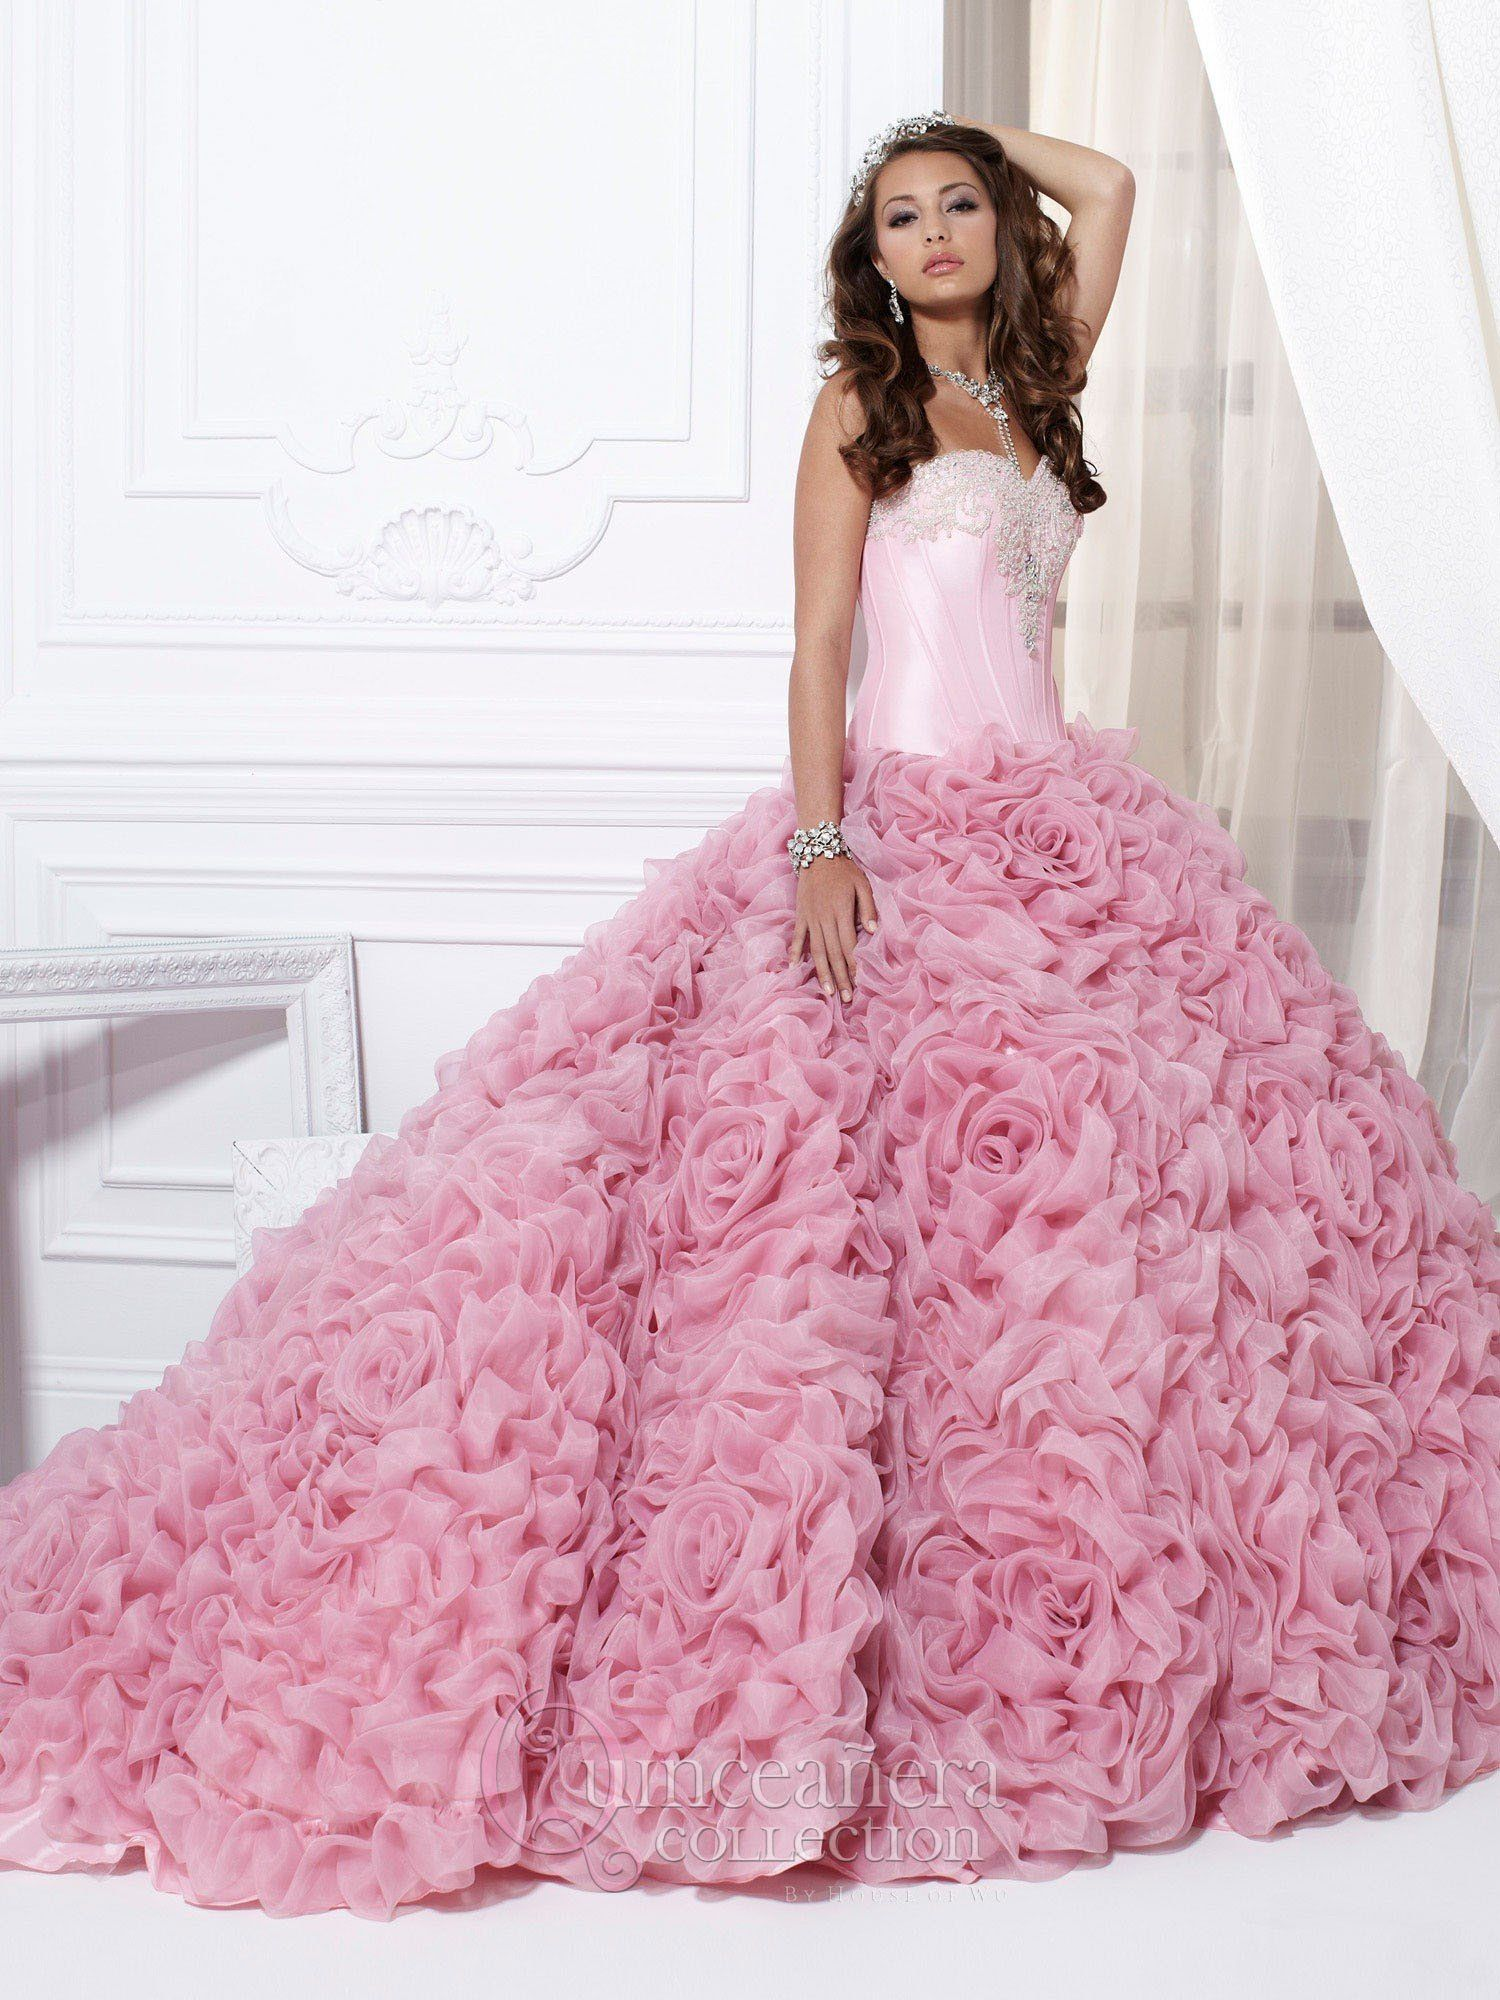 Quinceanera Dress 26702 House of Wu | Quinceanera collection, Full ...